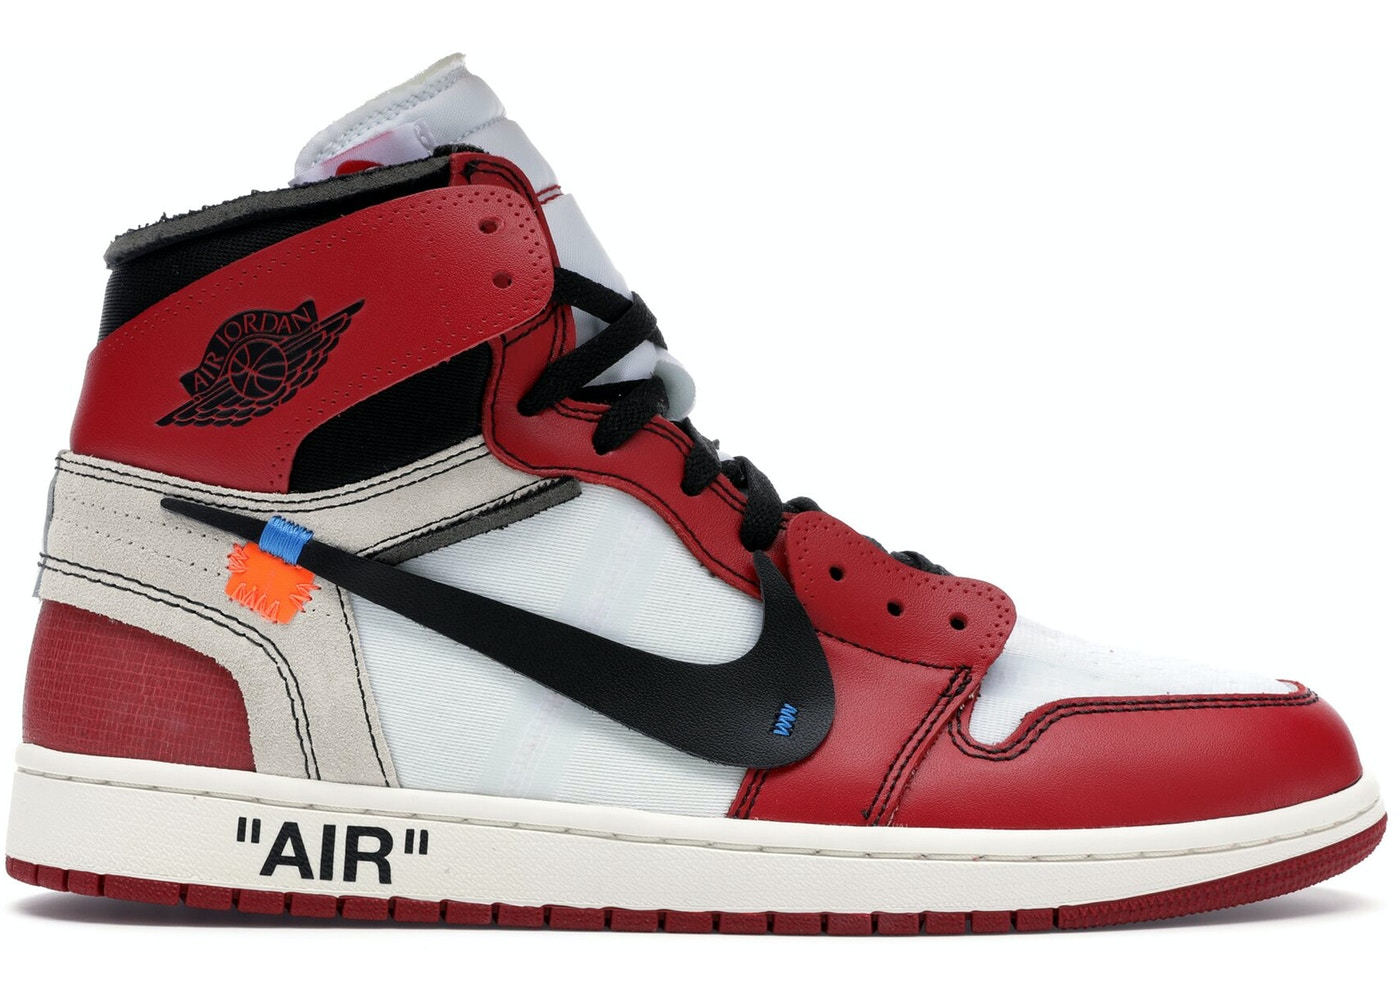 16de157ddf0bc4 Jordan 1 Retro High Off-White Chicago - AA3834-101